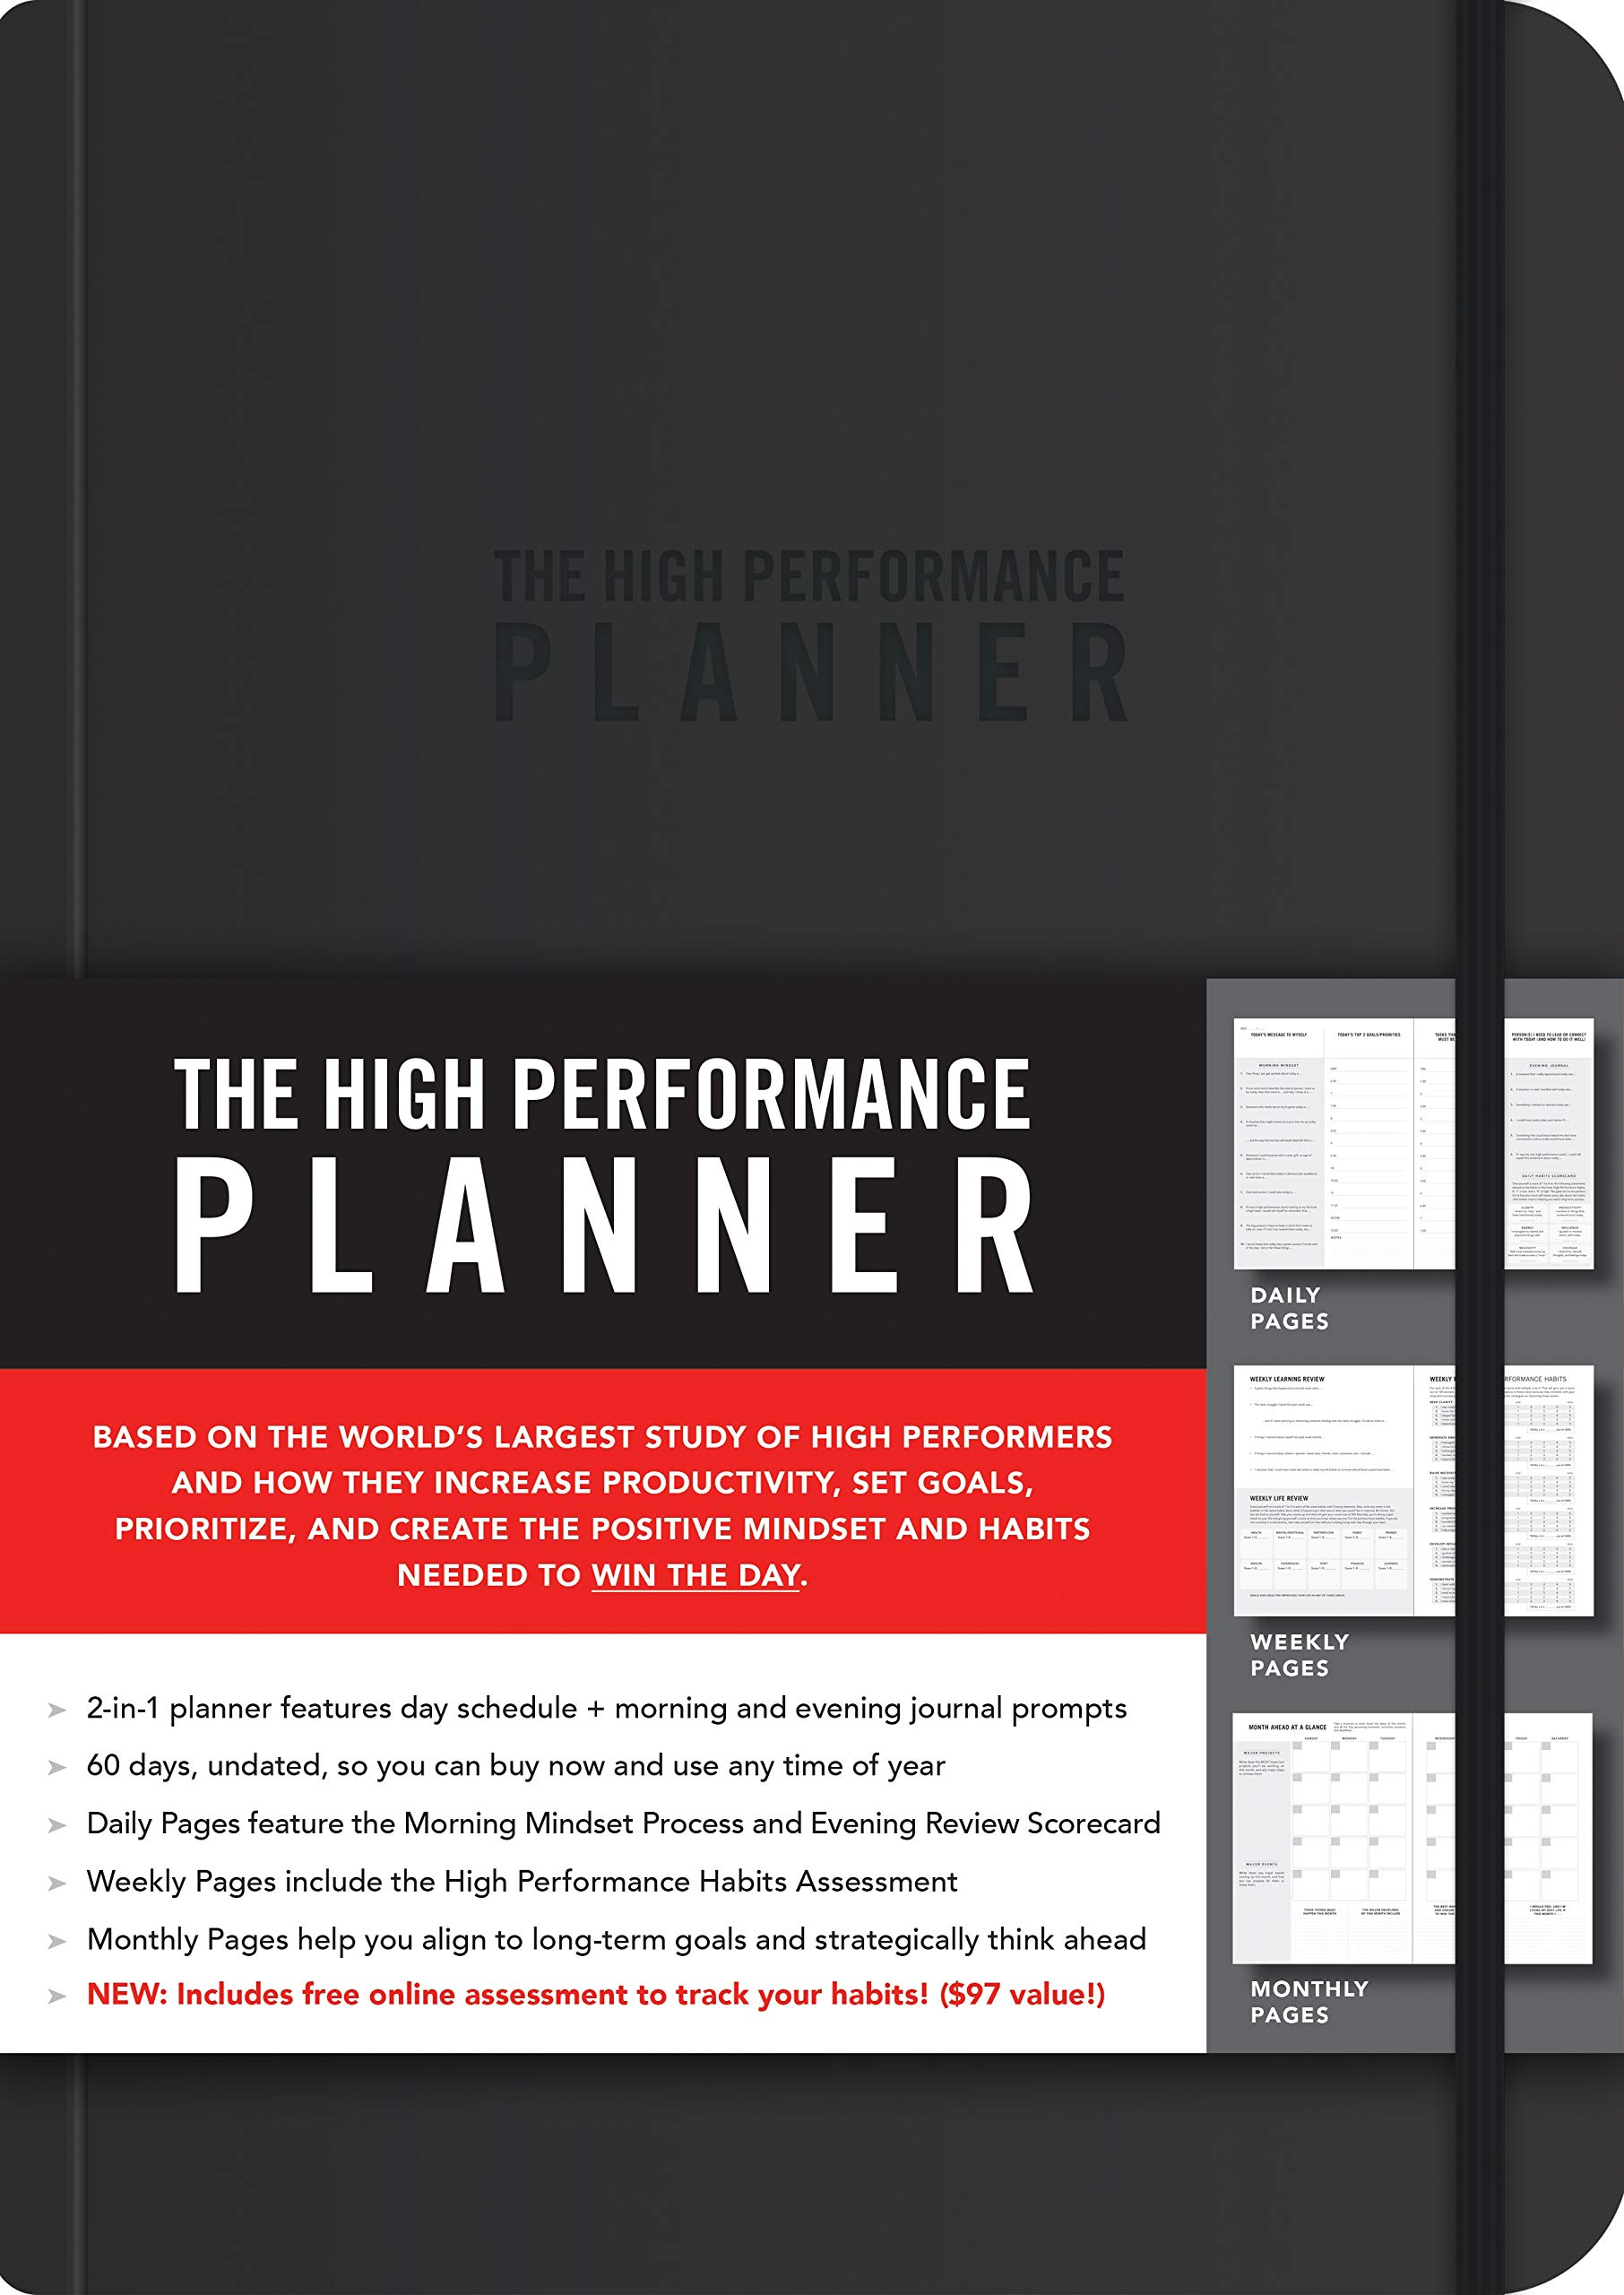 HighPerformancePlanner.jpg